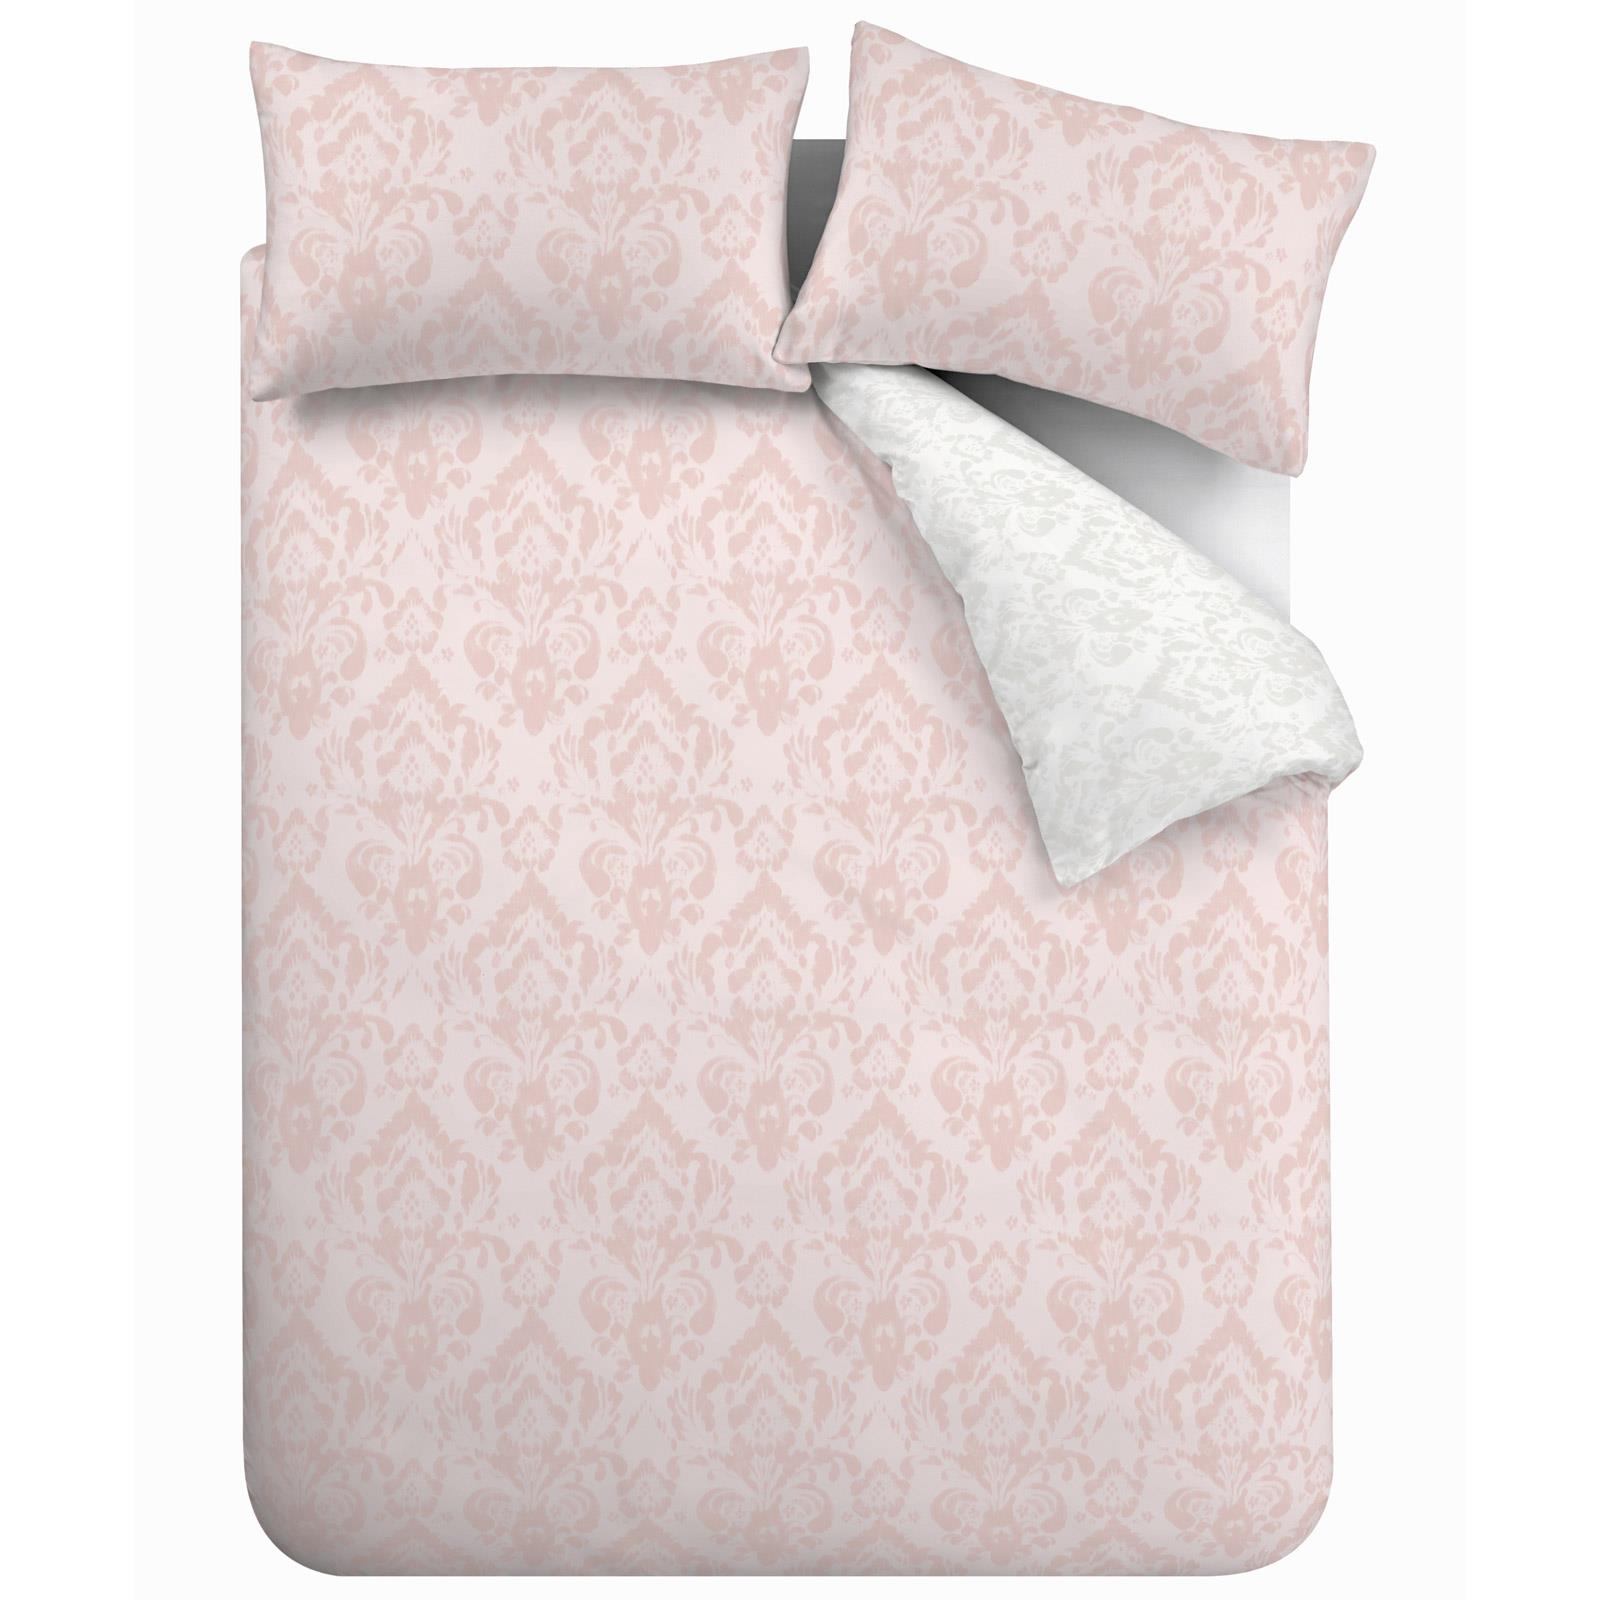 thumbnail 21 - Catherine Lansfield Damask Blush Duvet Covers Pink Grey Quilt Cover Bedding Sets